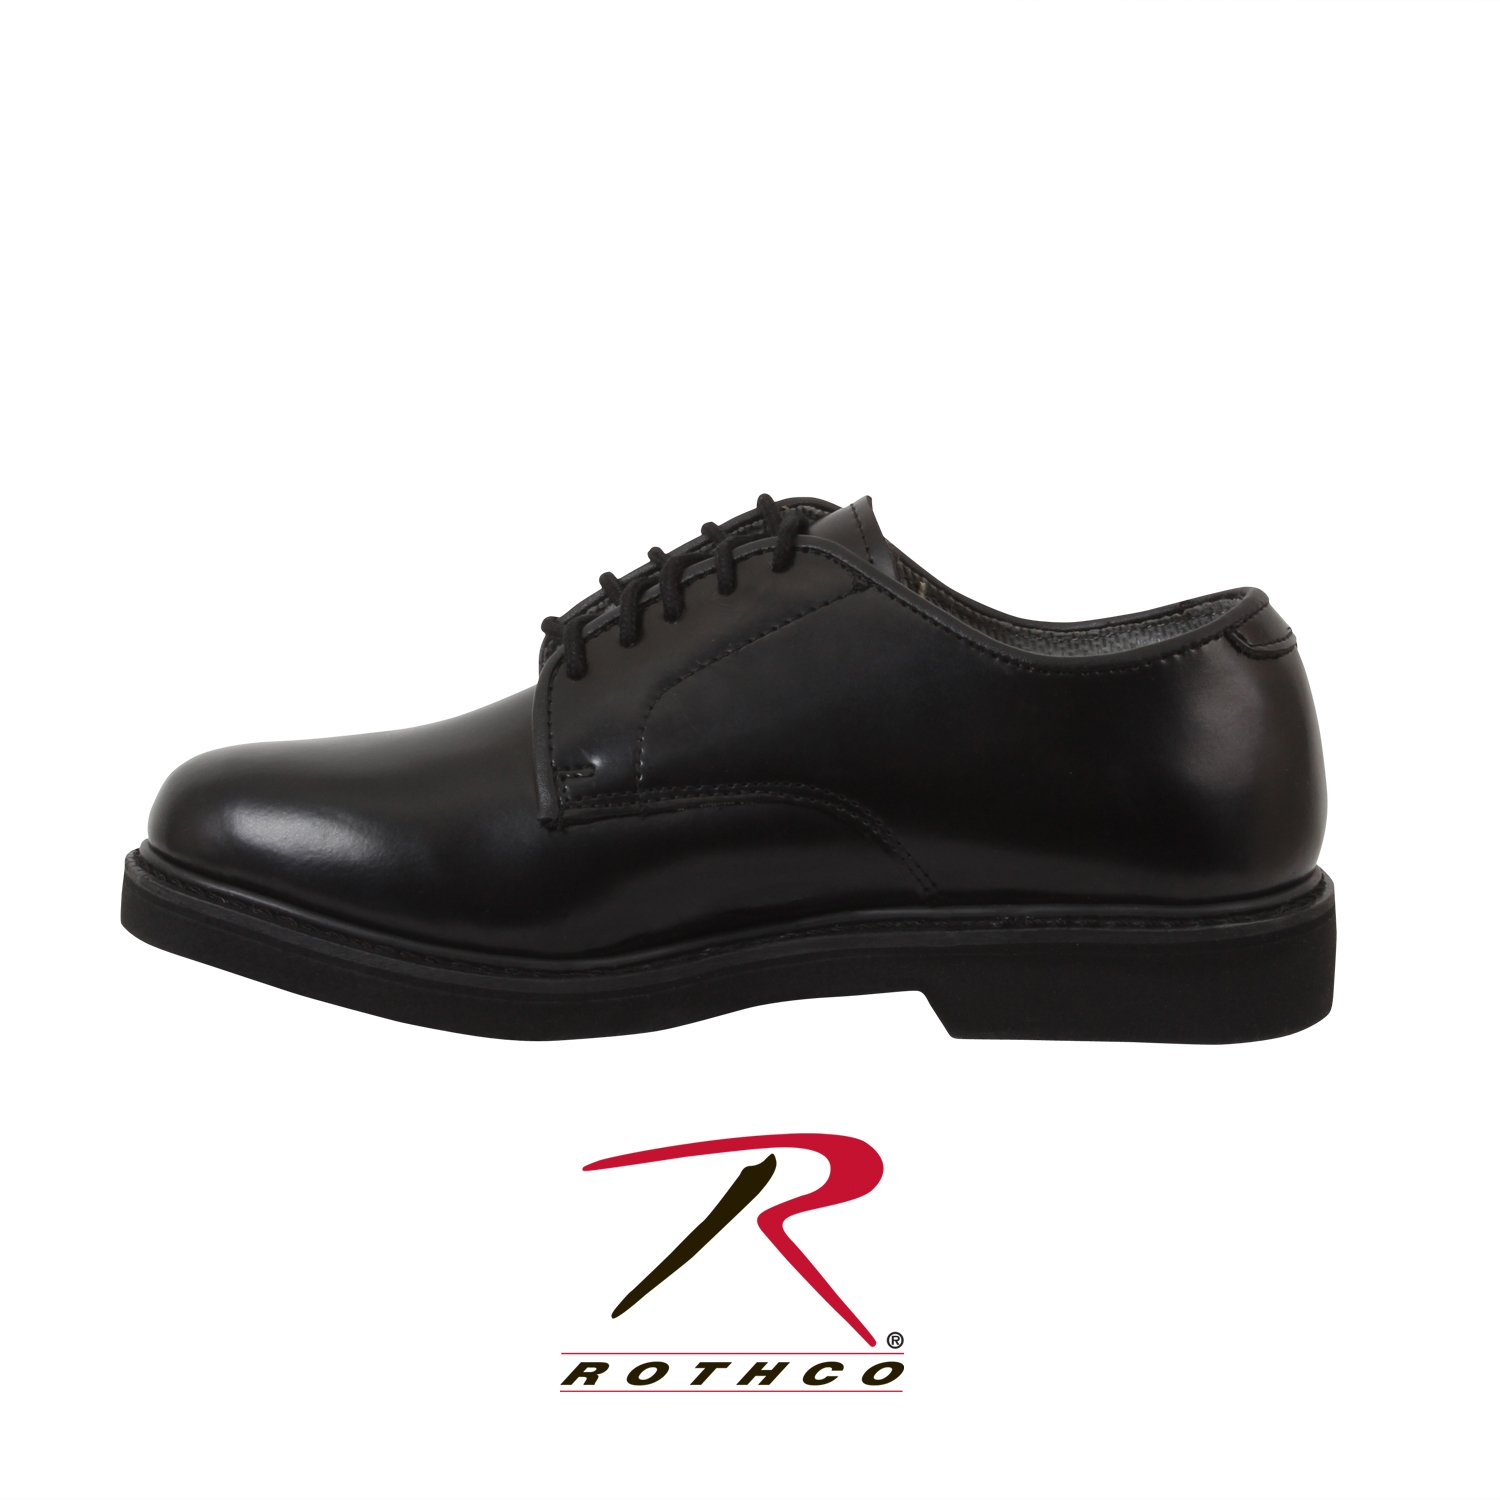 Rothco Soft Sole Uniform Oxford/Leather Shoe, Black, 6.5